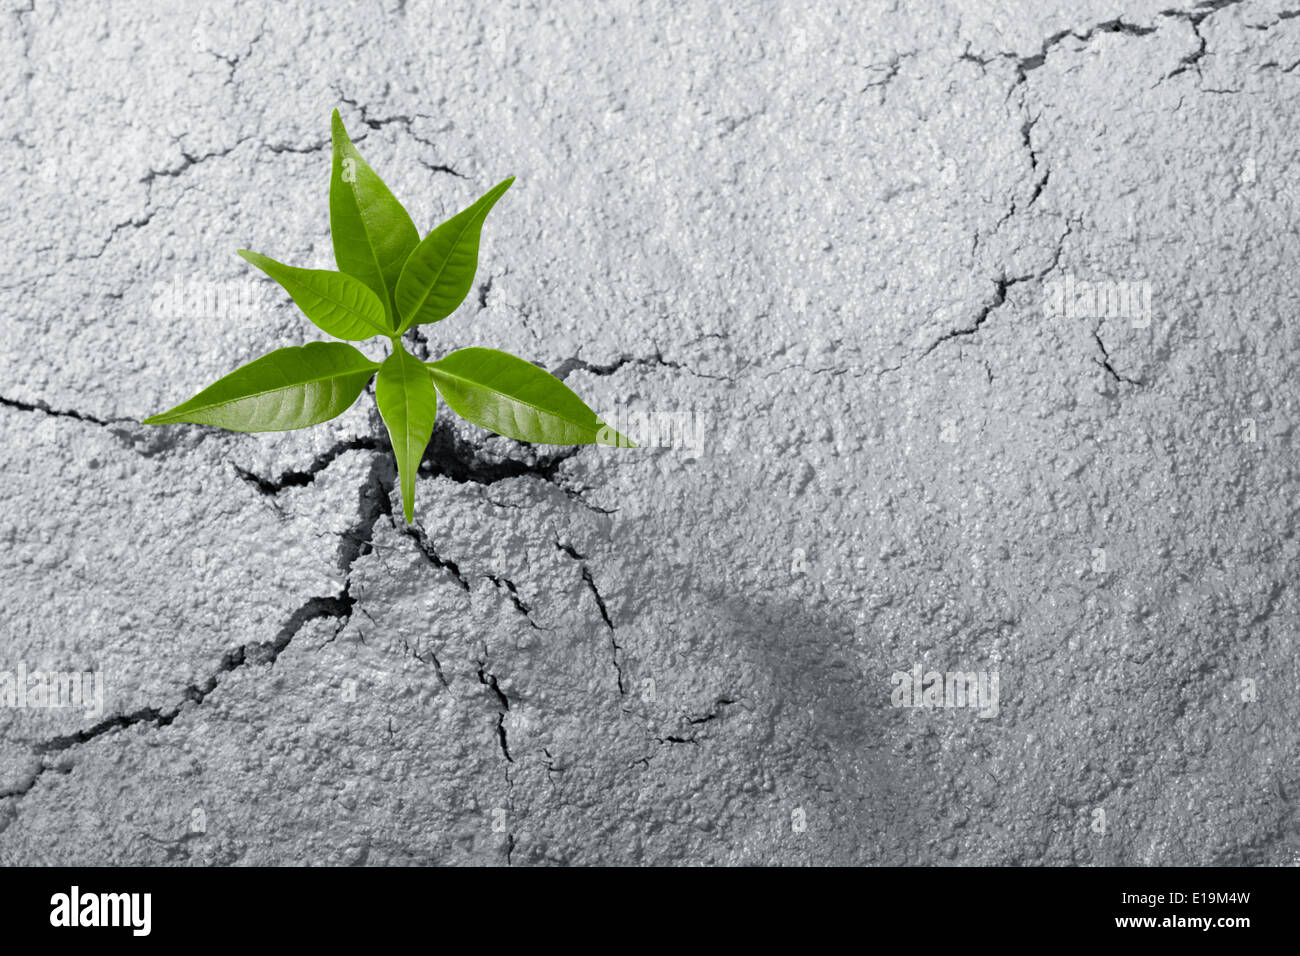 small plant breaking out from cement ground - Stock Image